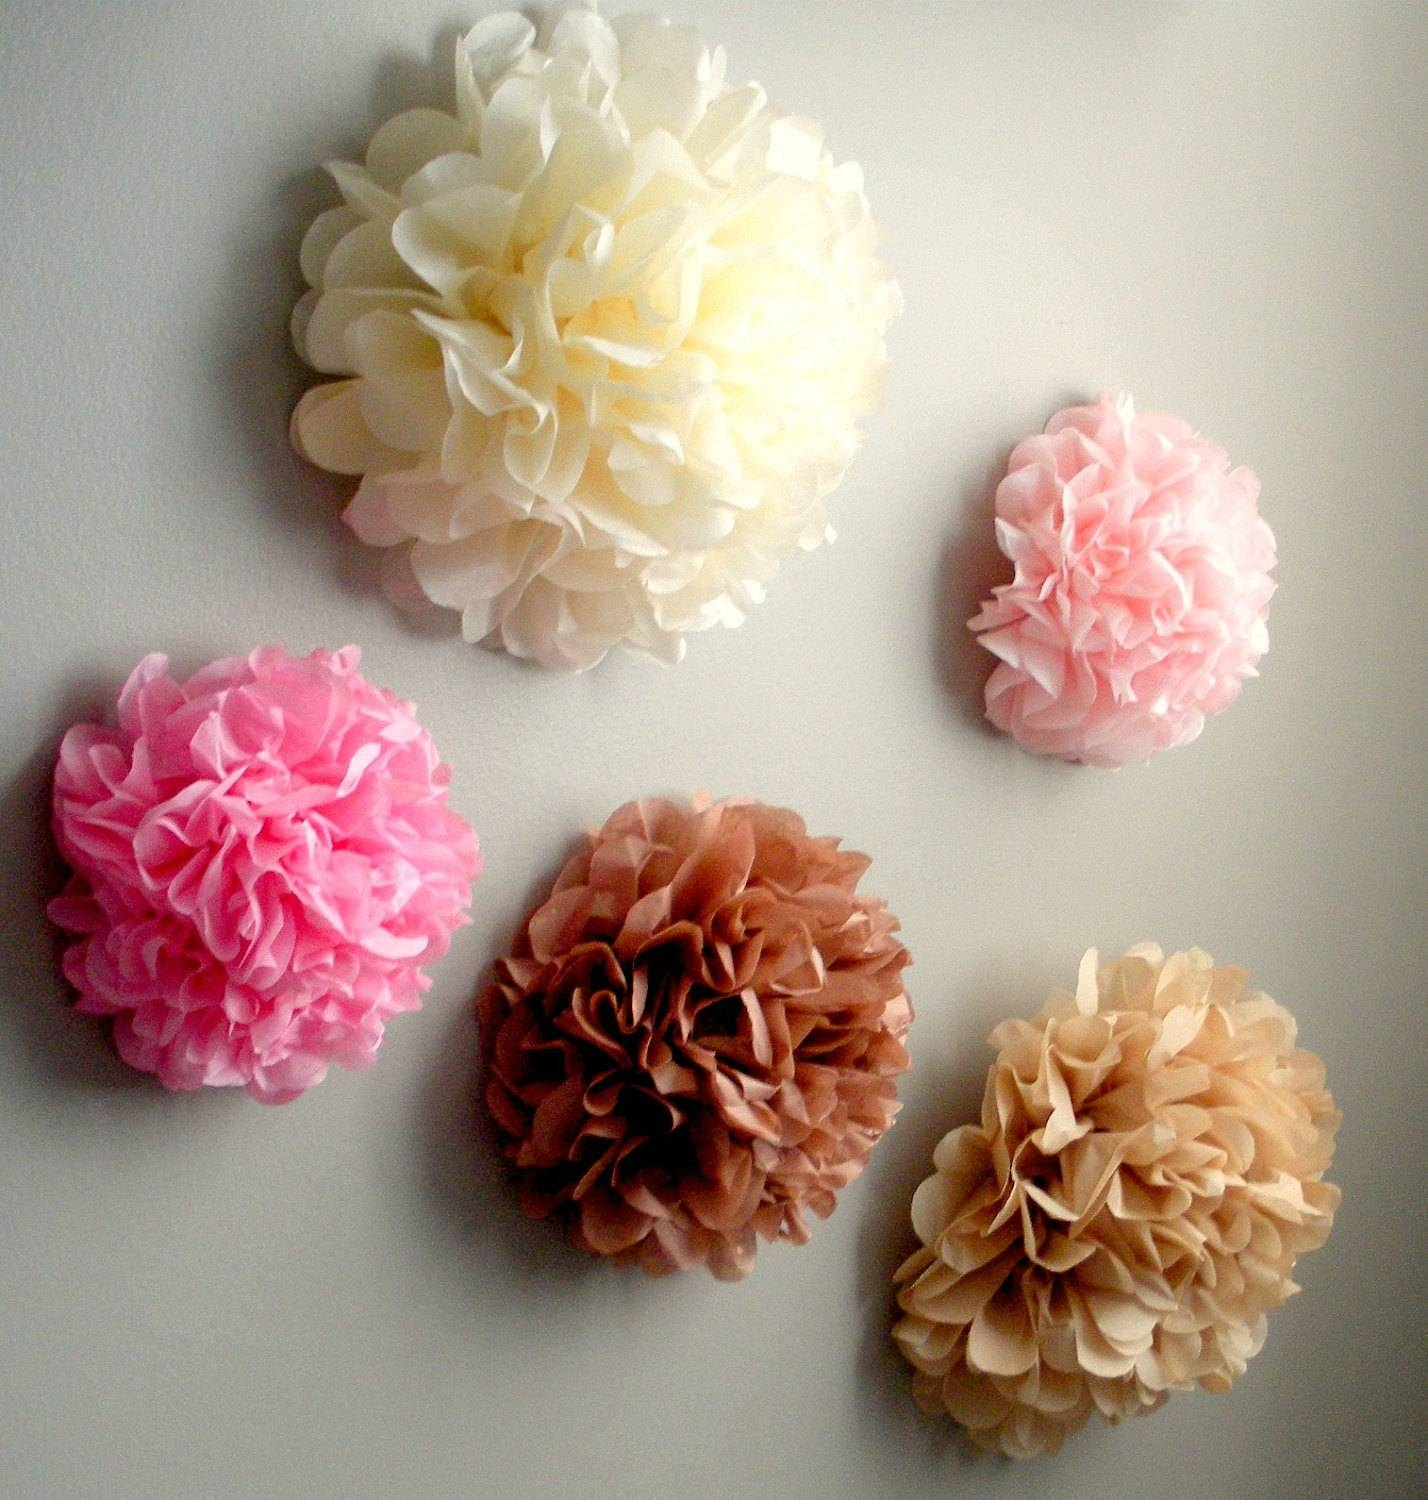 5 Tissue Paper Pom Pom Wall Flowerschoose Your For Most Popular Flowers 3D Wall Art (View 4 of 20)